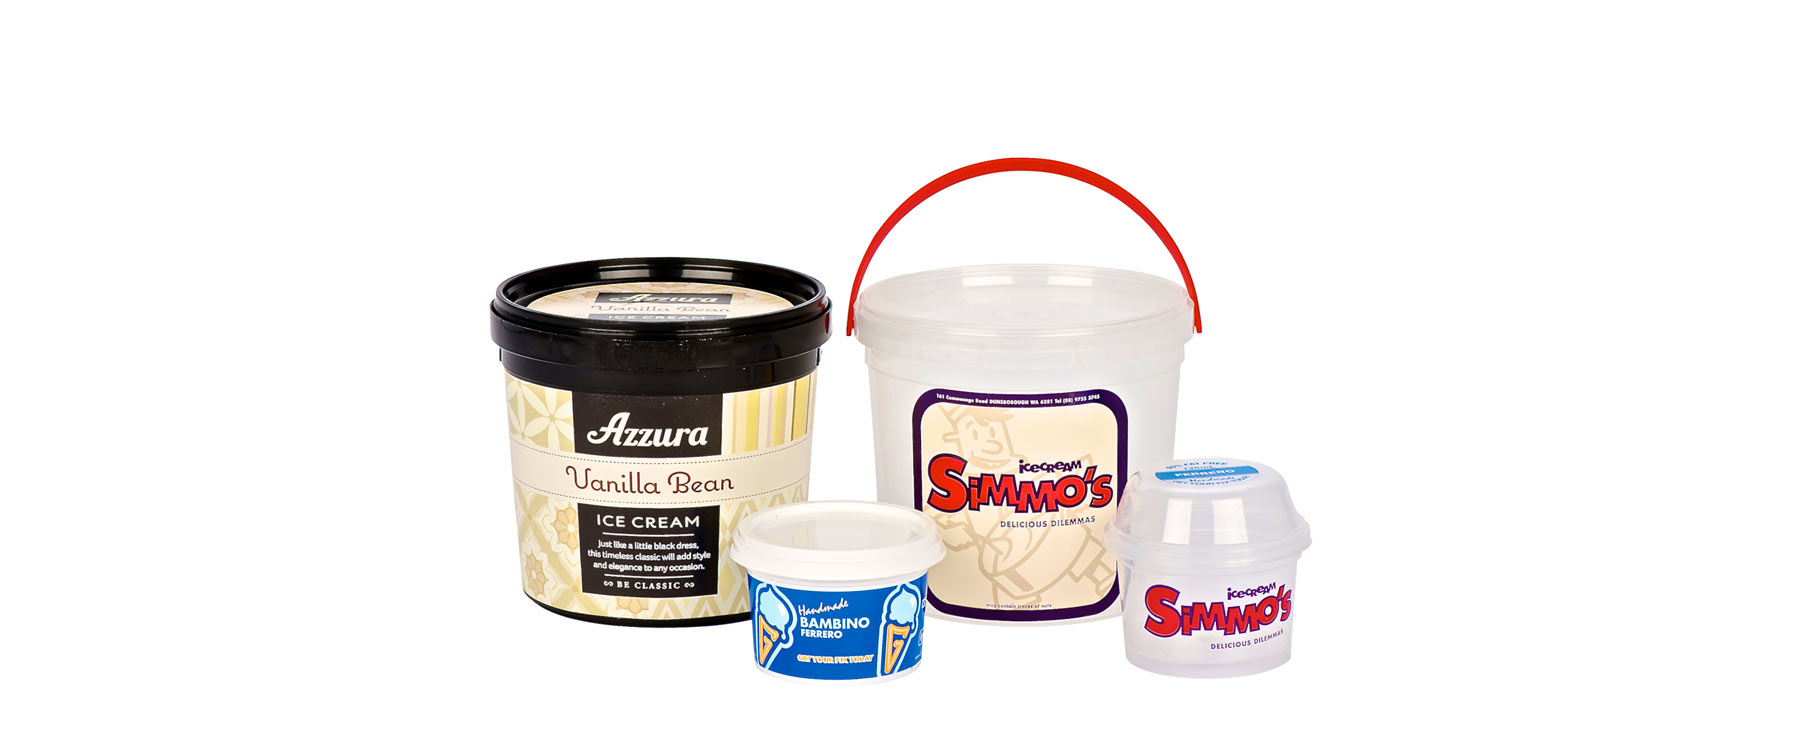 We specialise in the manufacture of high quality plastic products